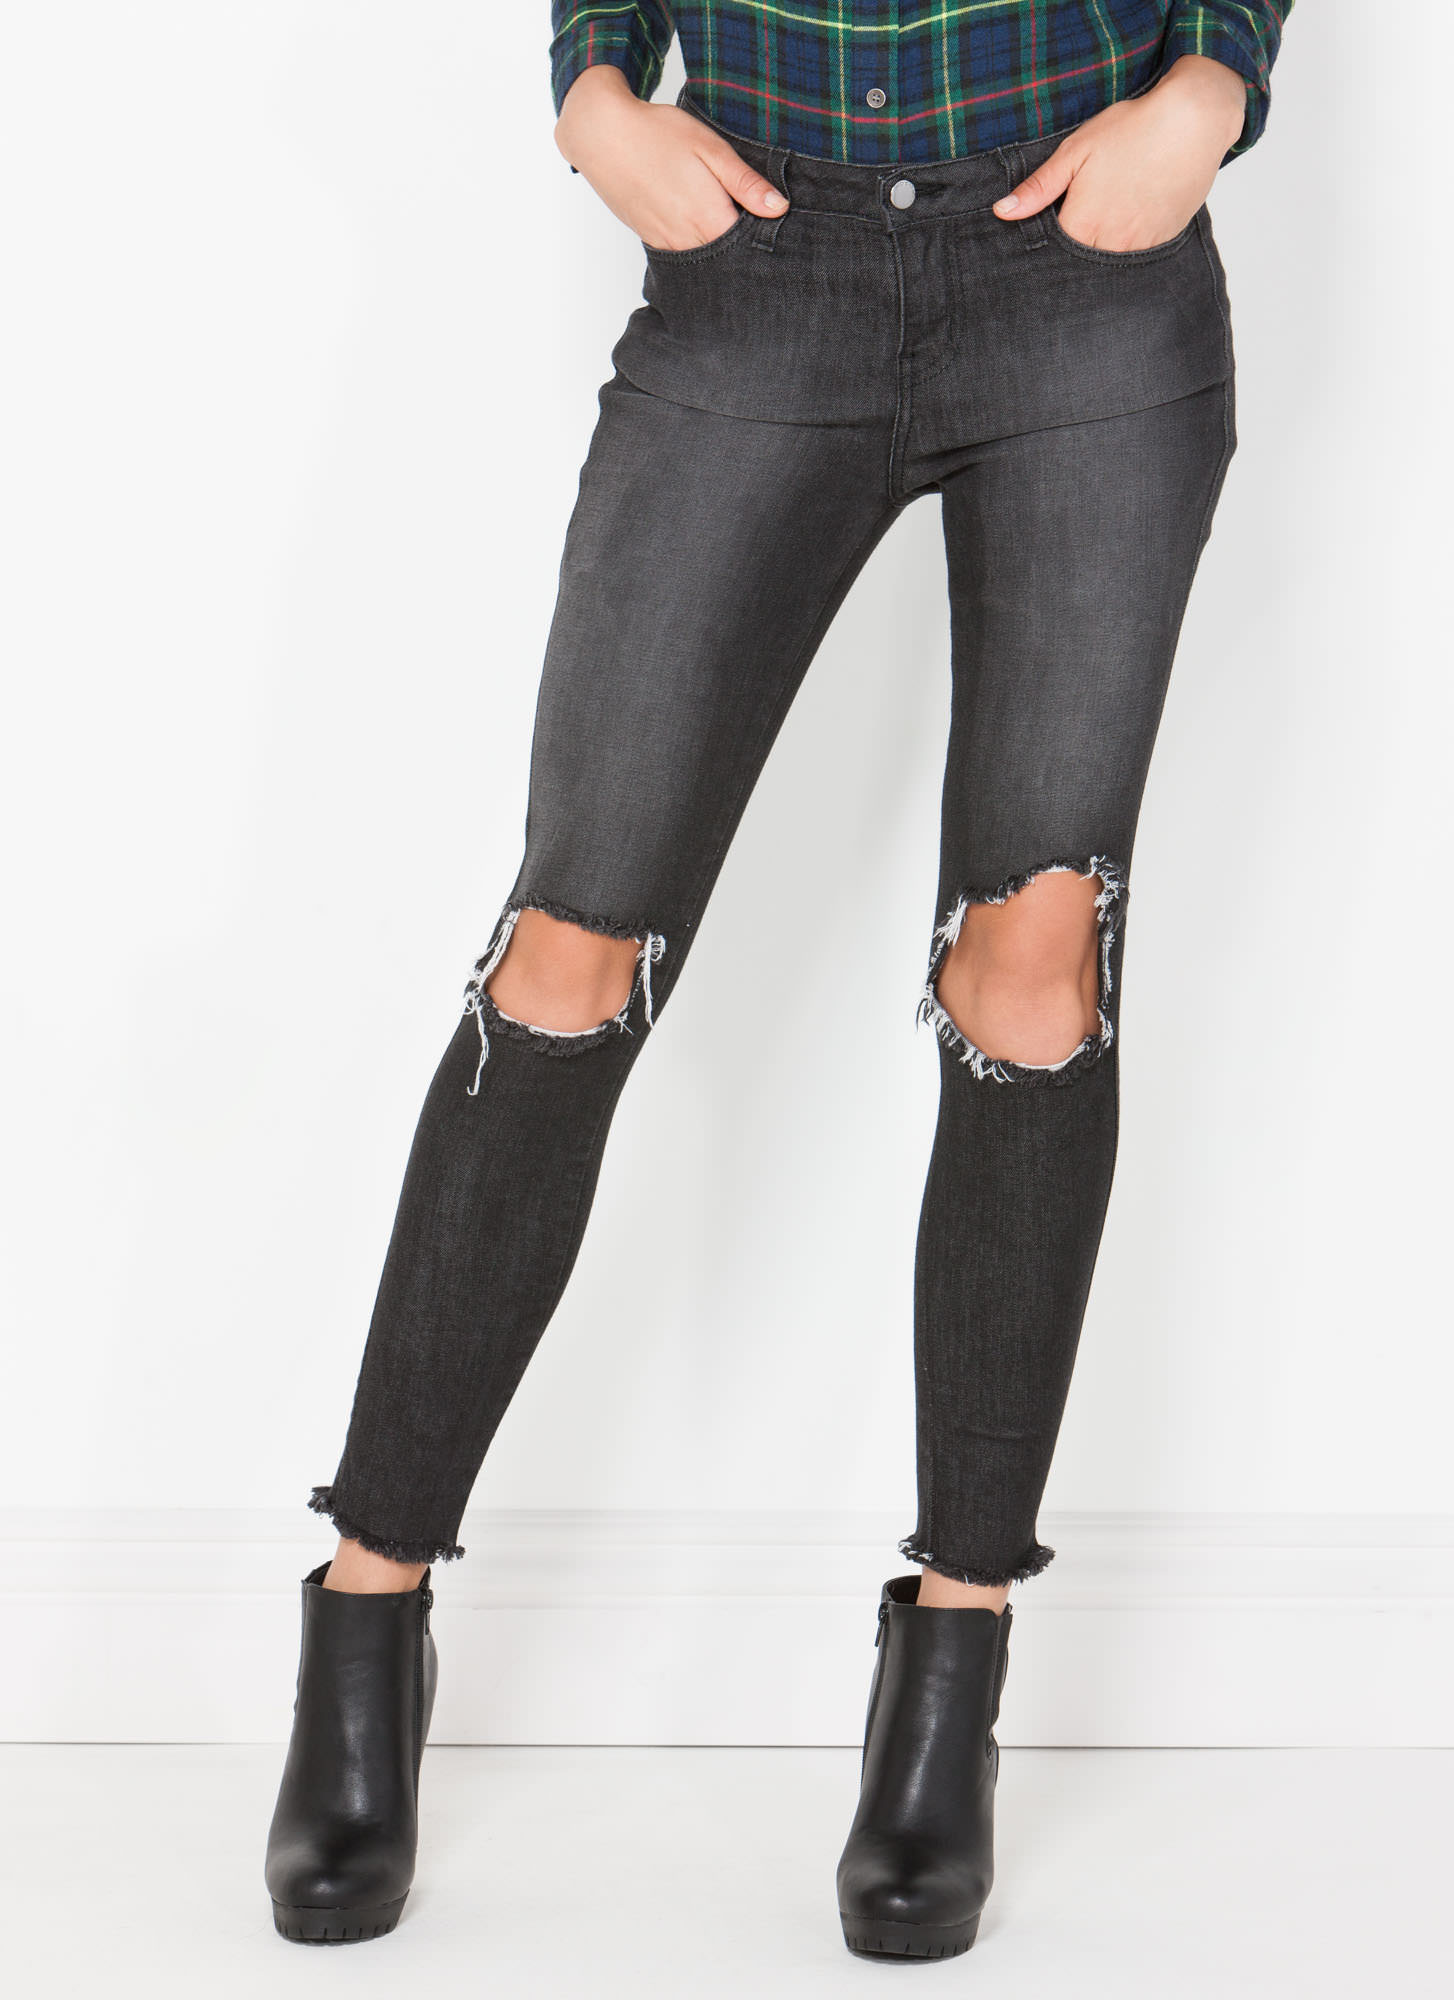 Buy low price, high quality black cut jeans men with worldwide shipping on palmmetrf1.ga